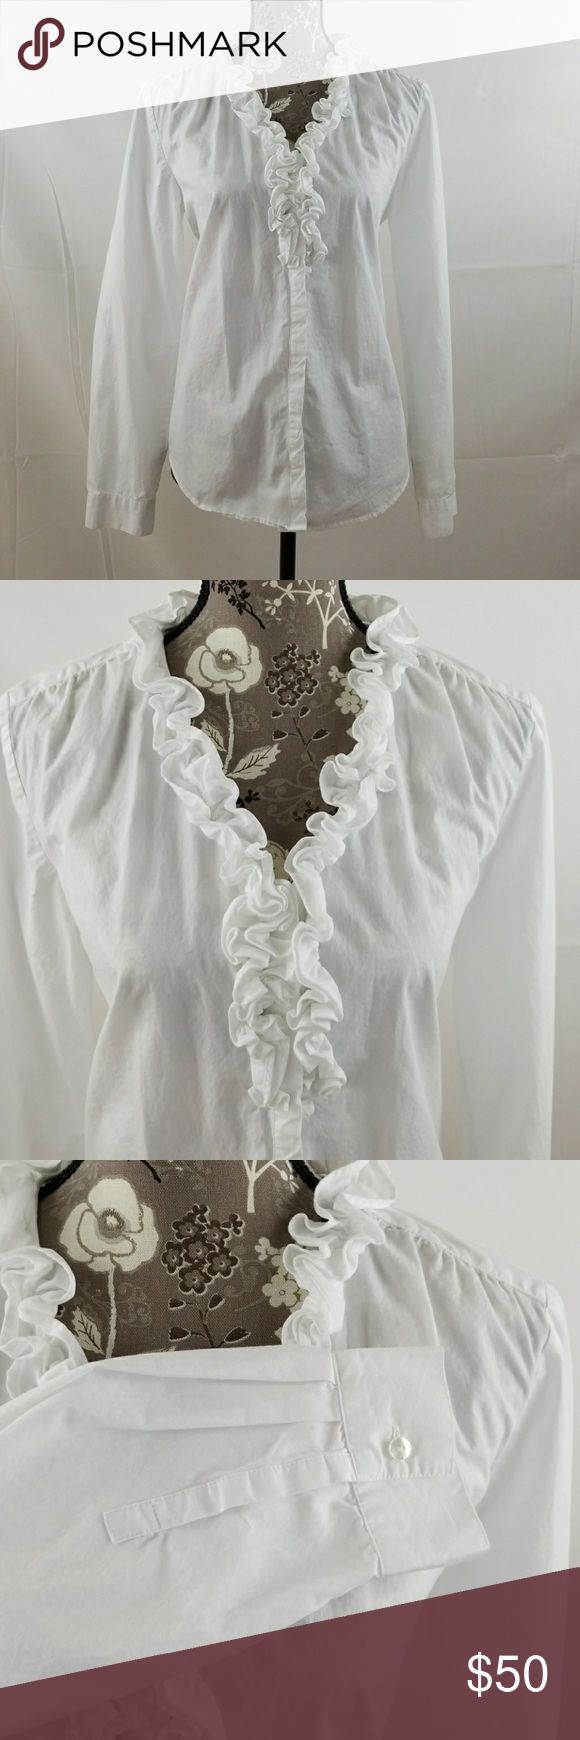 LOFT white ruffle blouse Loft white cotton blouse with ruffles around vneck opening. 19 1\2 in arm pit to arm pit. 25 in. At the longest point. 23in on sides.  100%cotton. 6 button closure. LOFT Tops Blouses